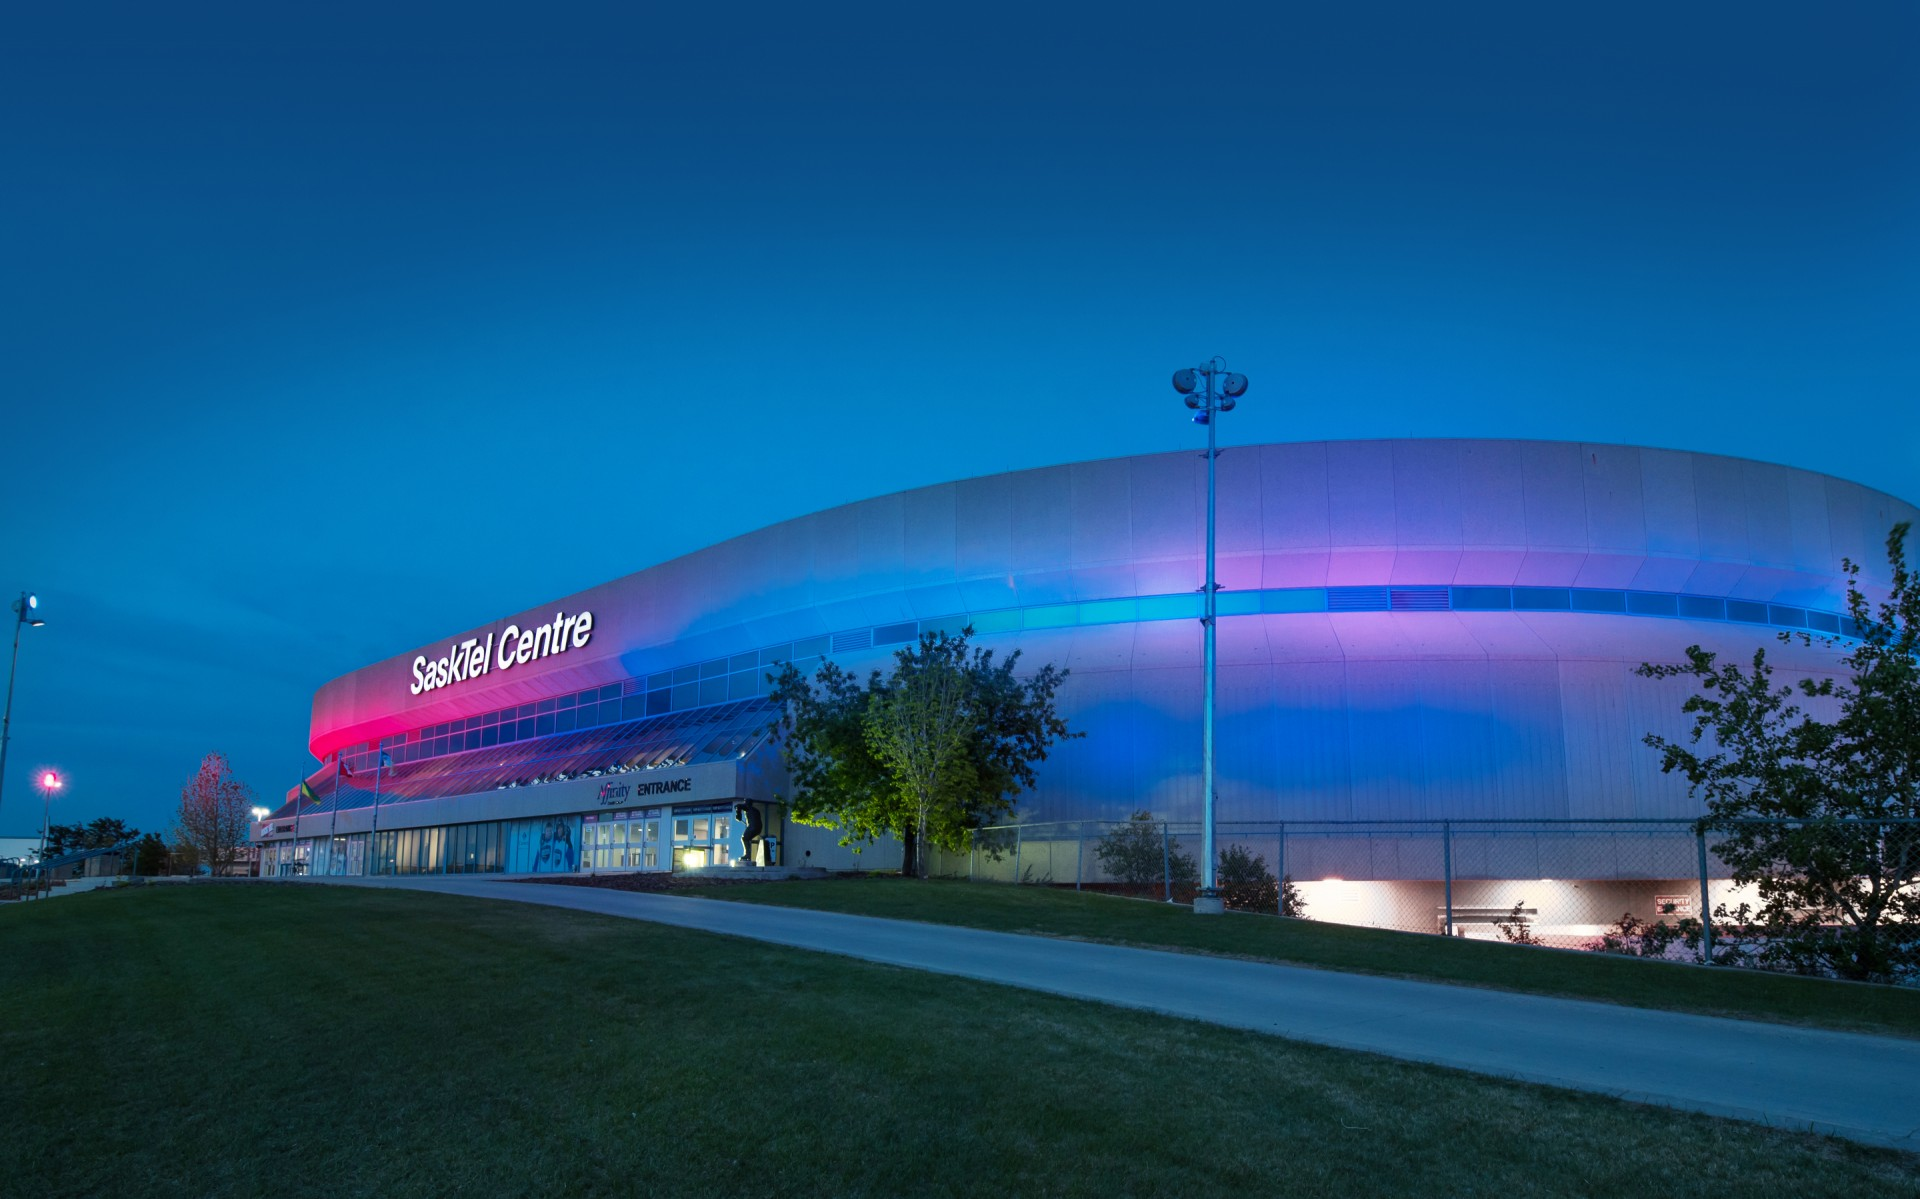 The luminaires, which use a mix of beam angles, are pole-mounted around the perimeter of the arena, at a distance of 50 feet from the facade.